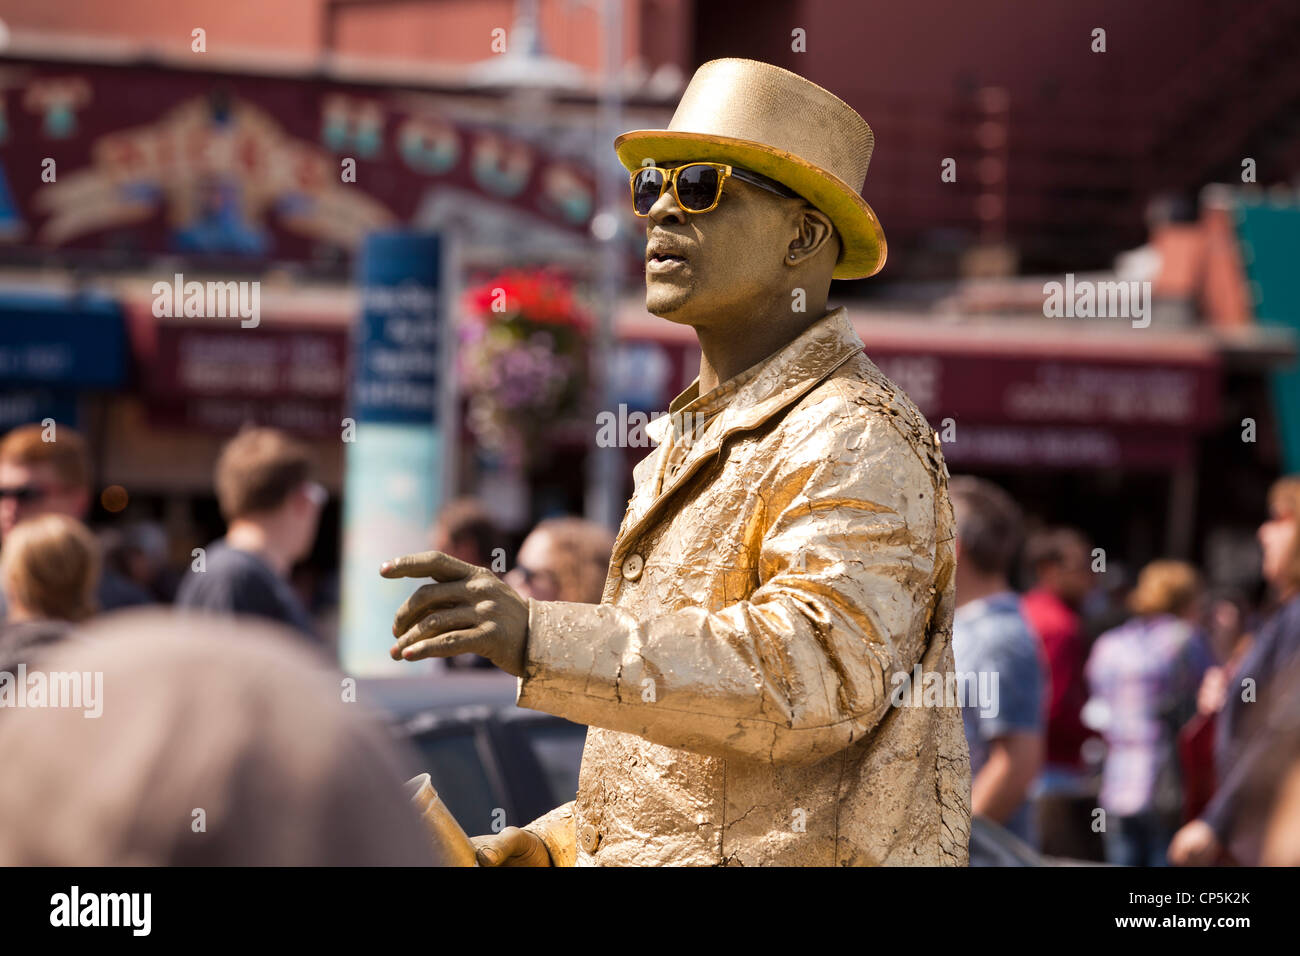 Gold man street performer on busy street - San Francisco, California USA - Stock Image